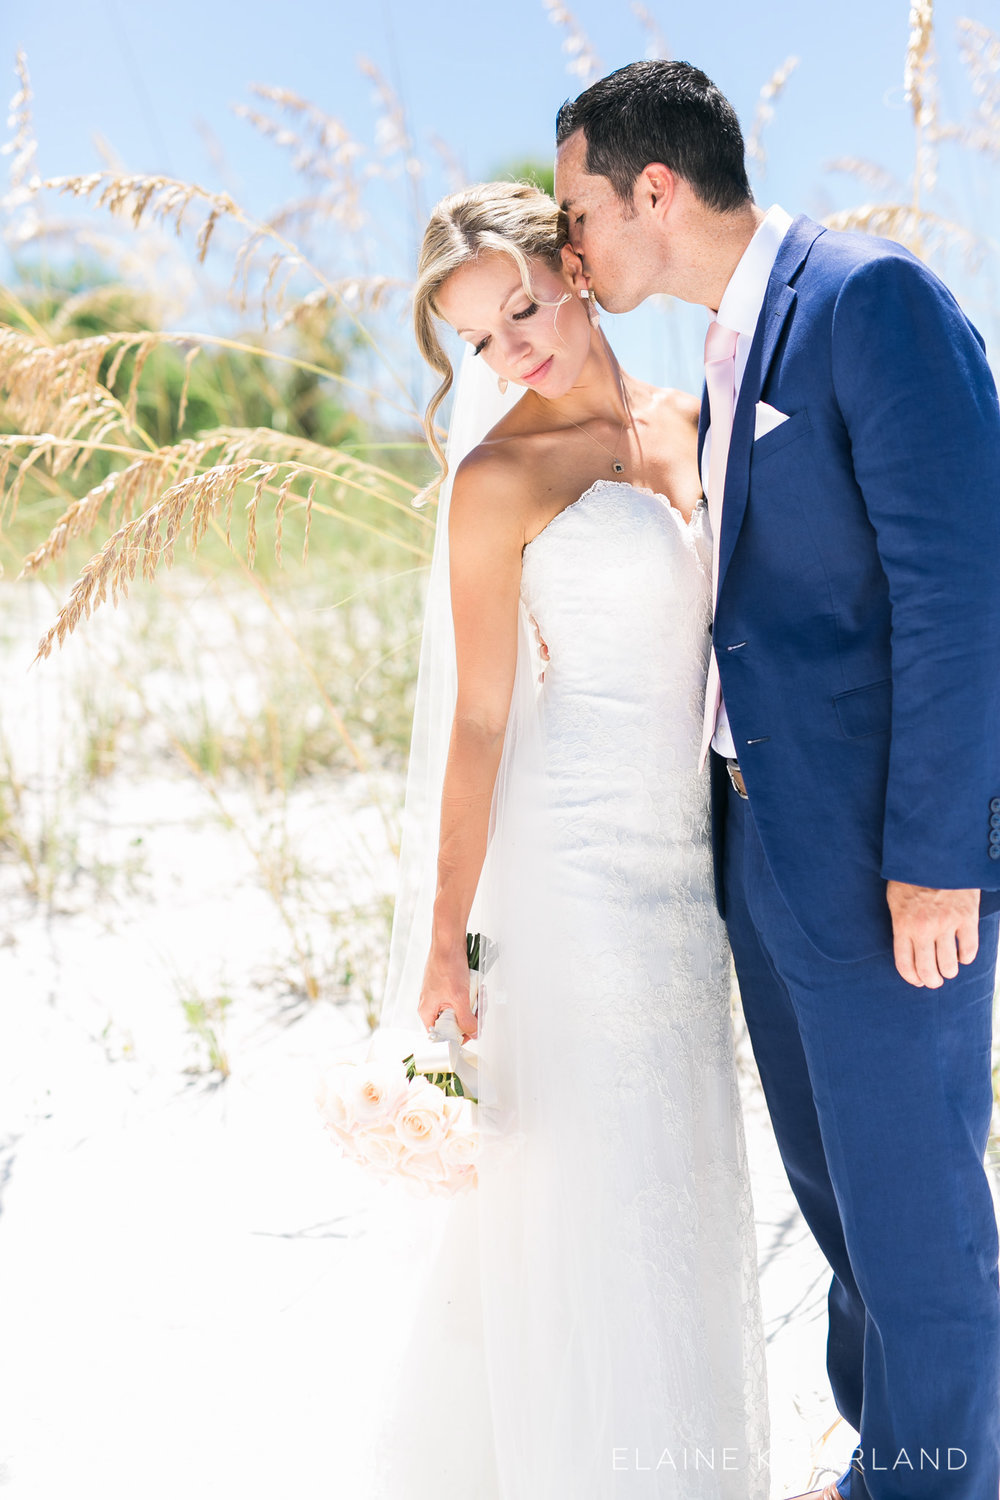 nautical-navy-blush-tampa-fl-wedding-11.jpg